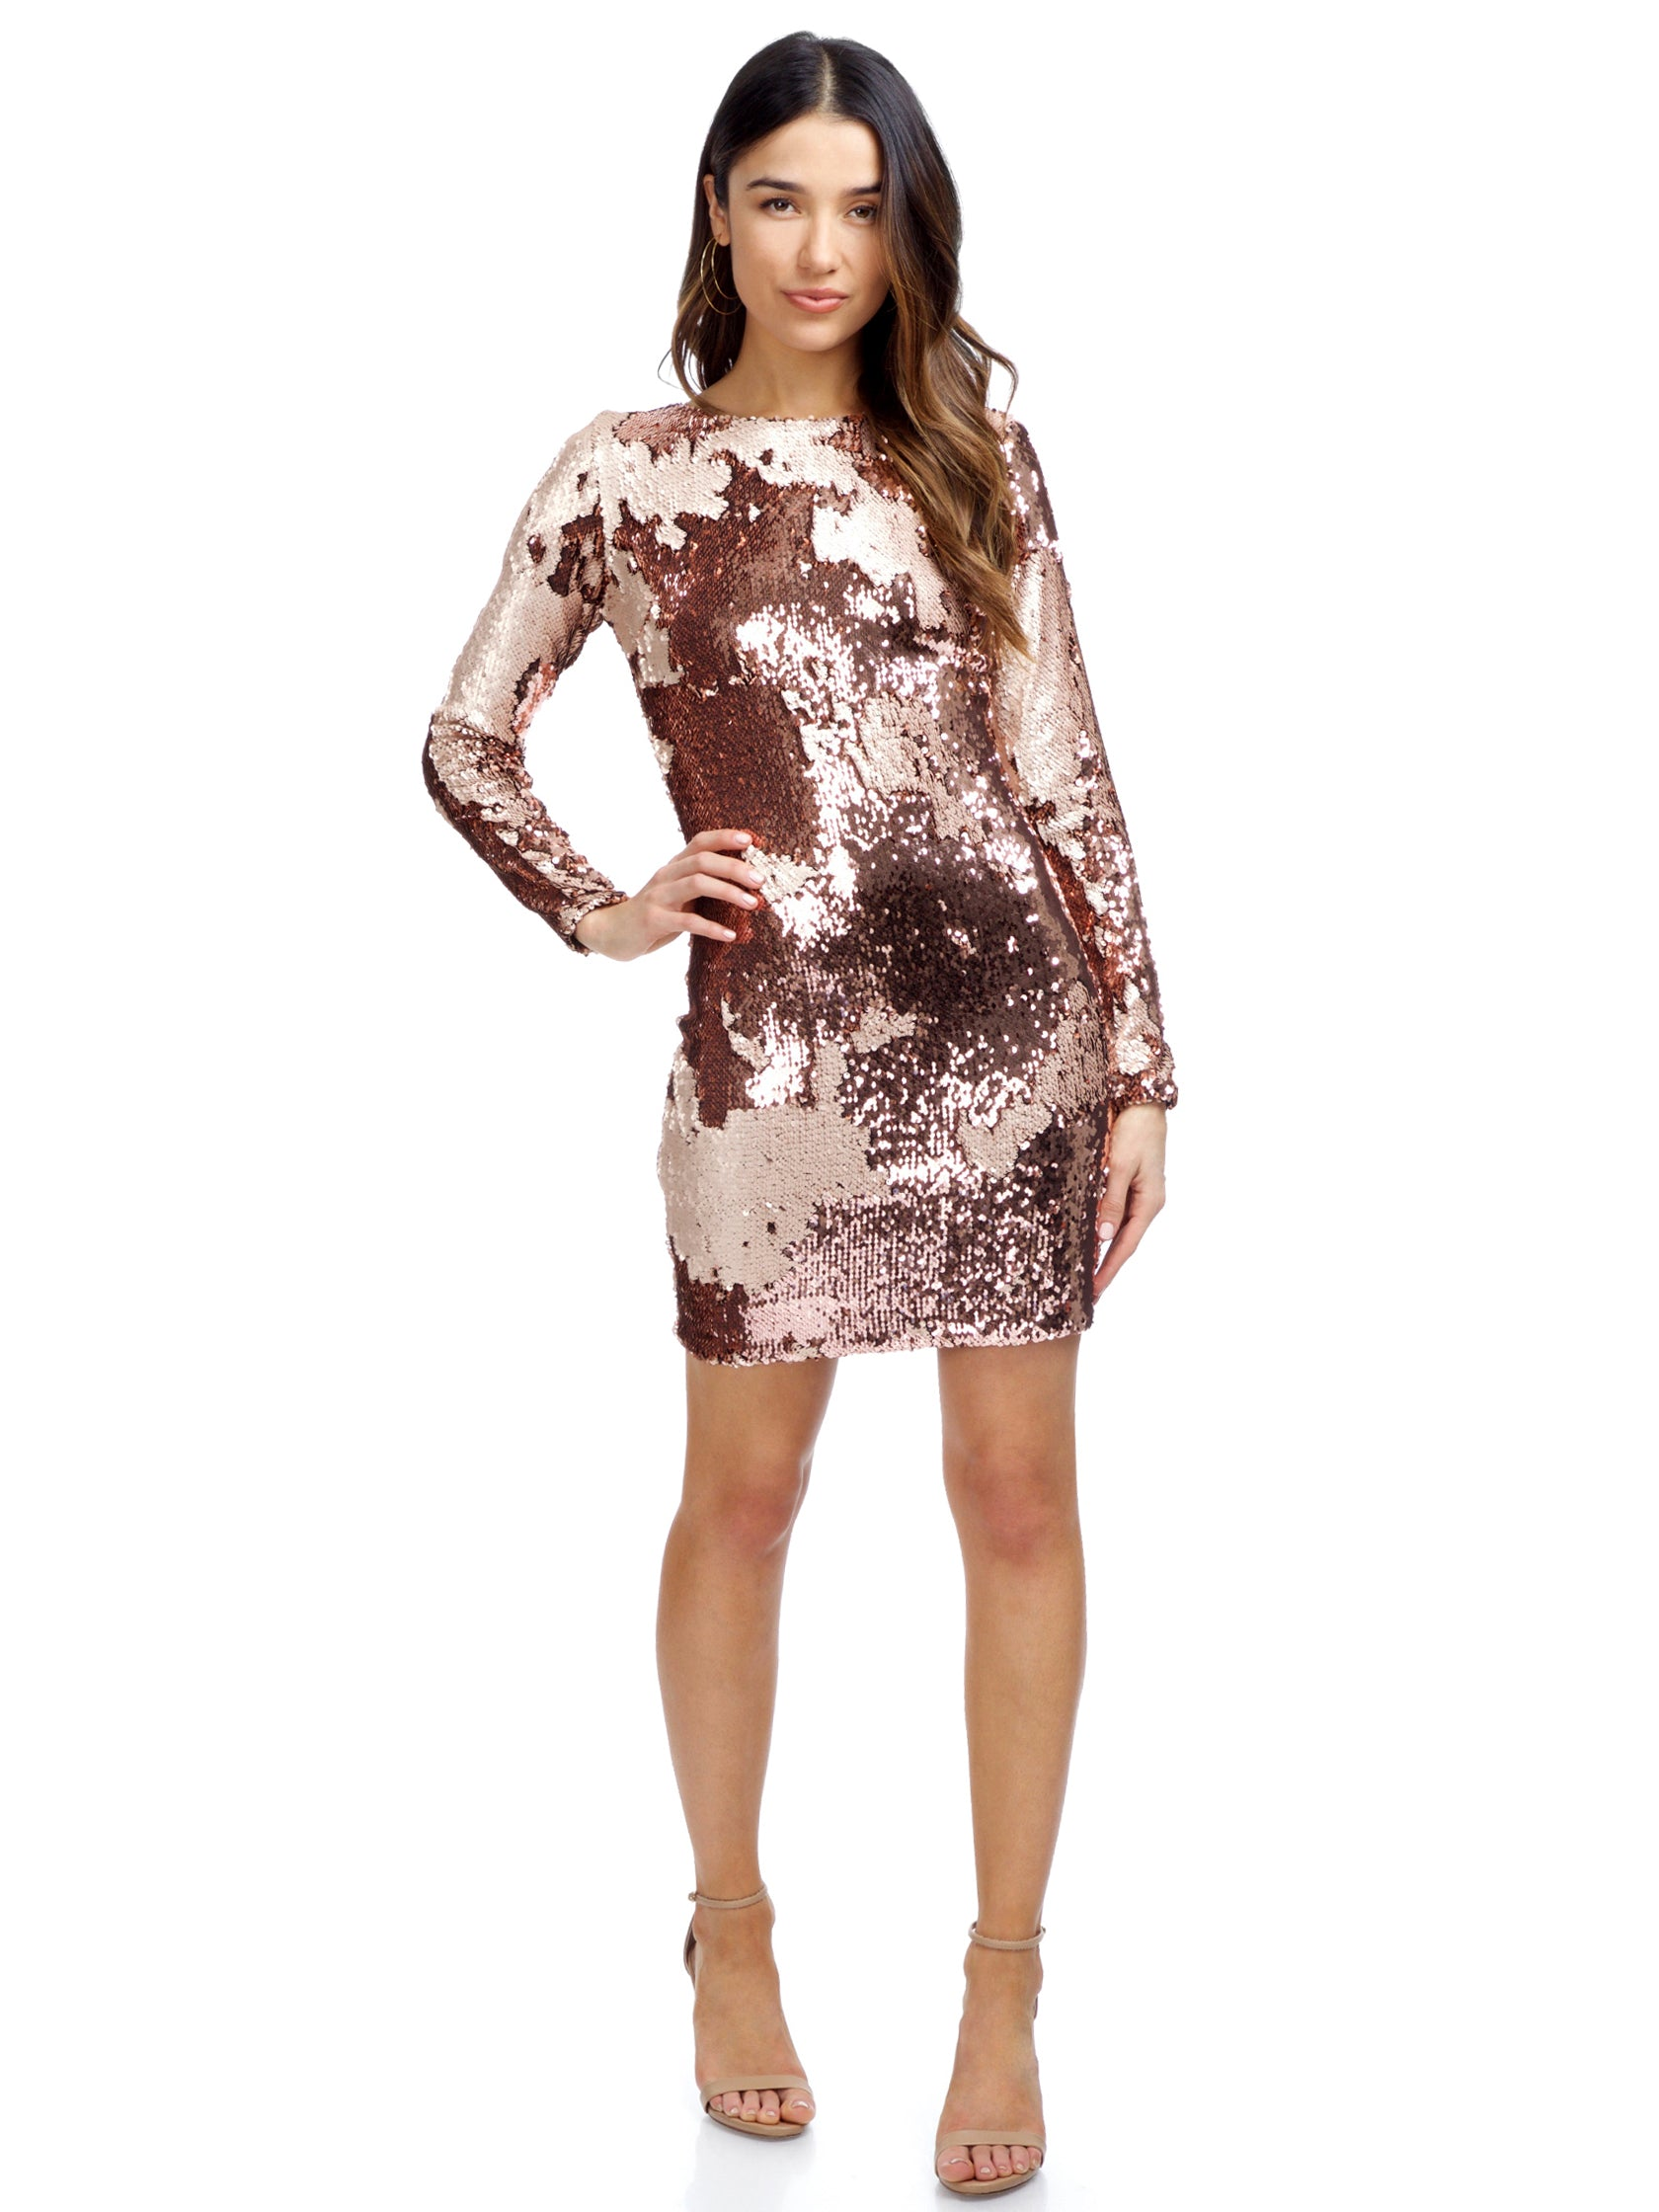 3c6c3cf43b39 Girl outfit in a dress rental from Dress the Population called Lola Sequin  Mini Dress